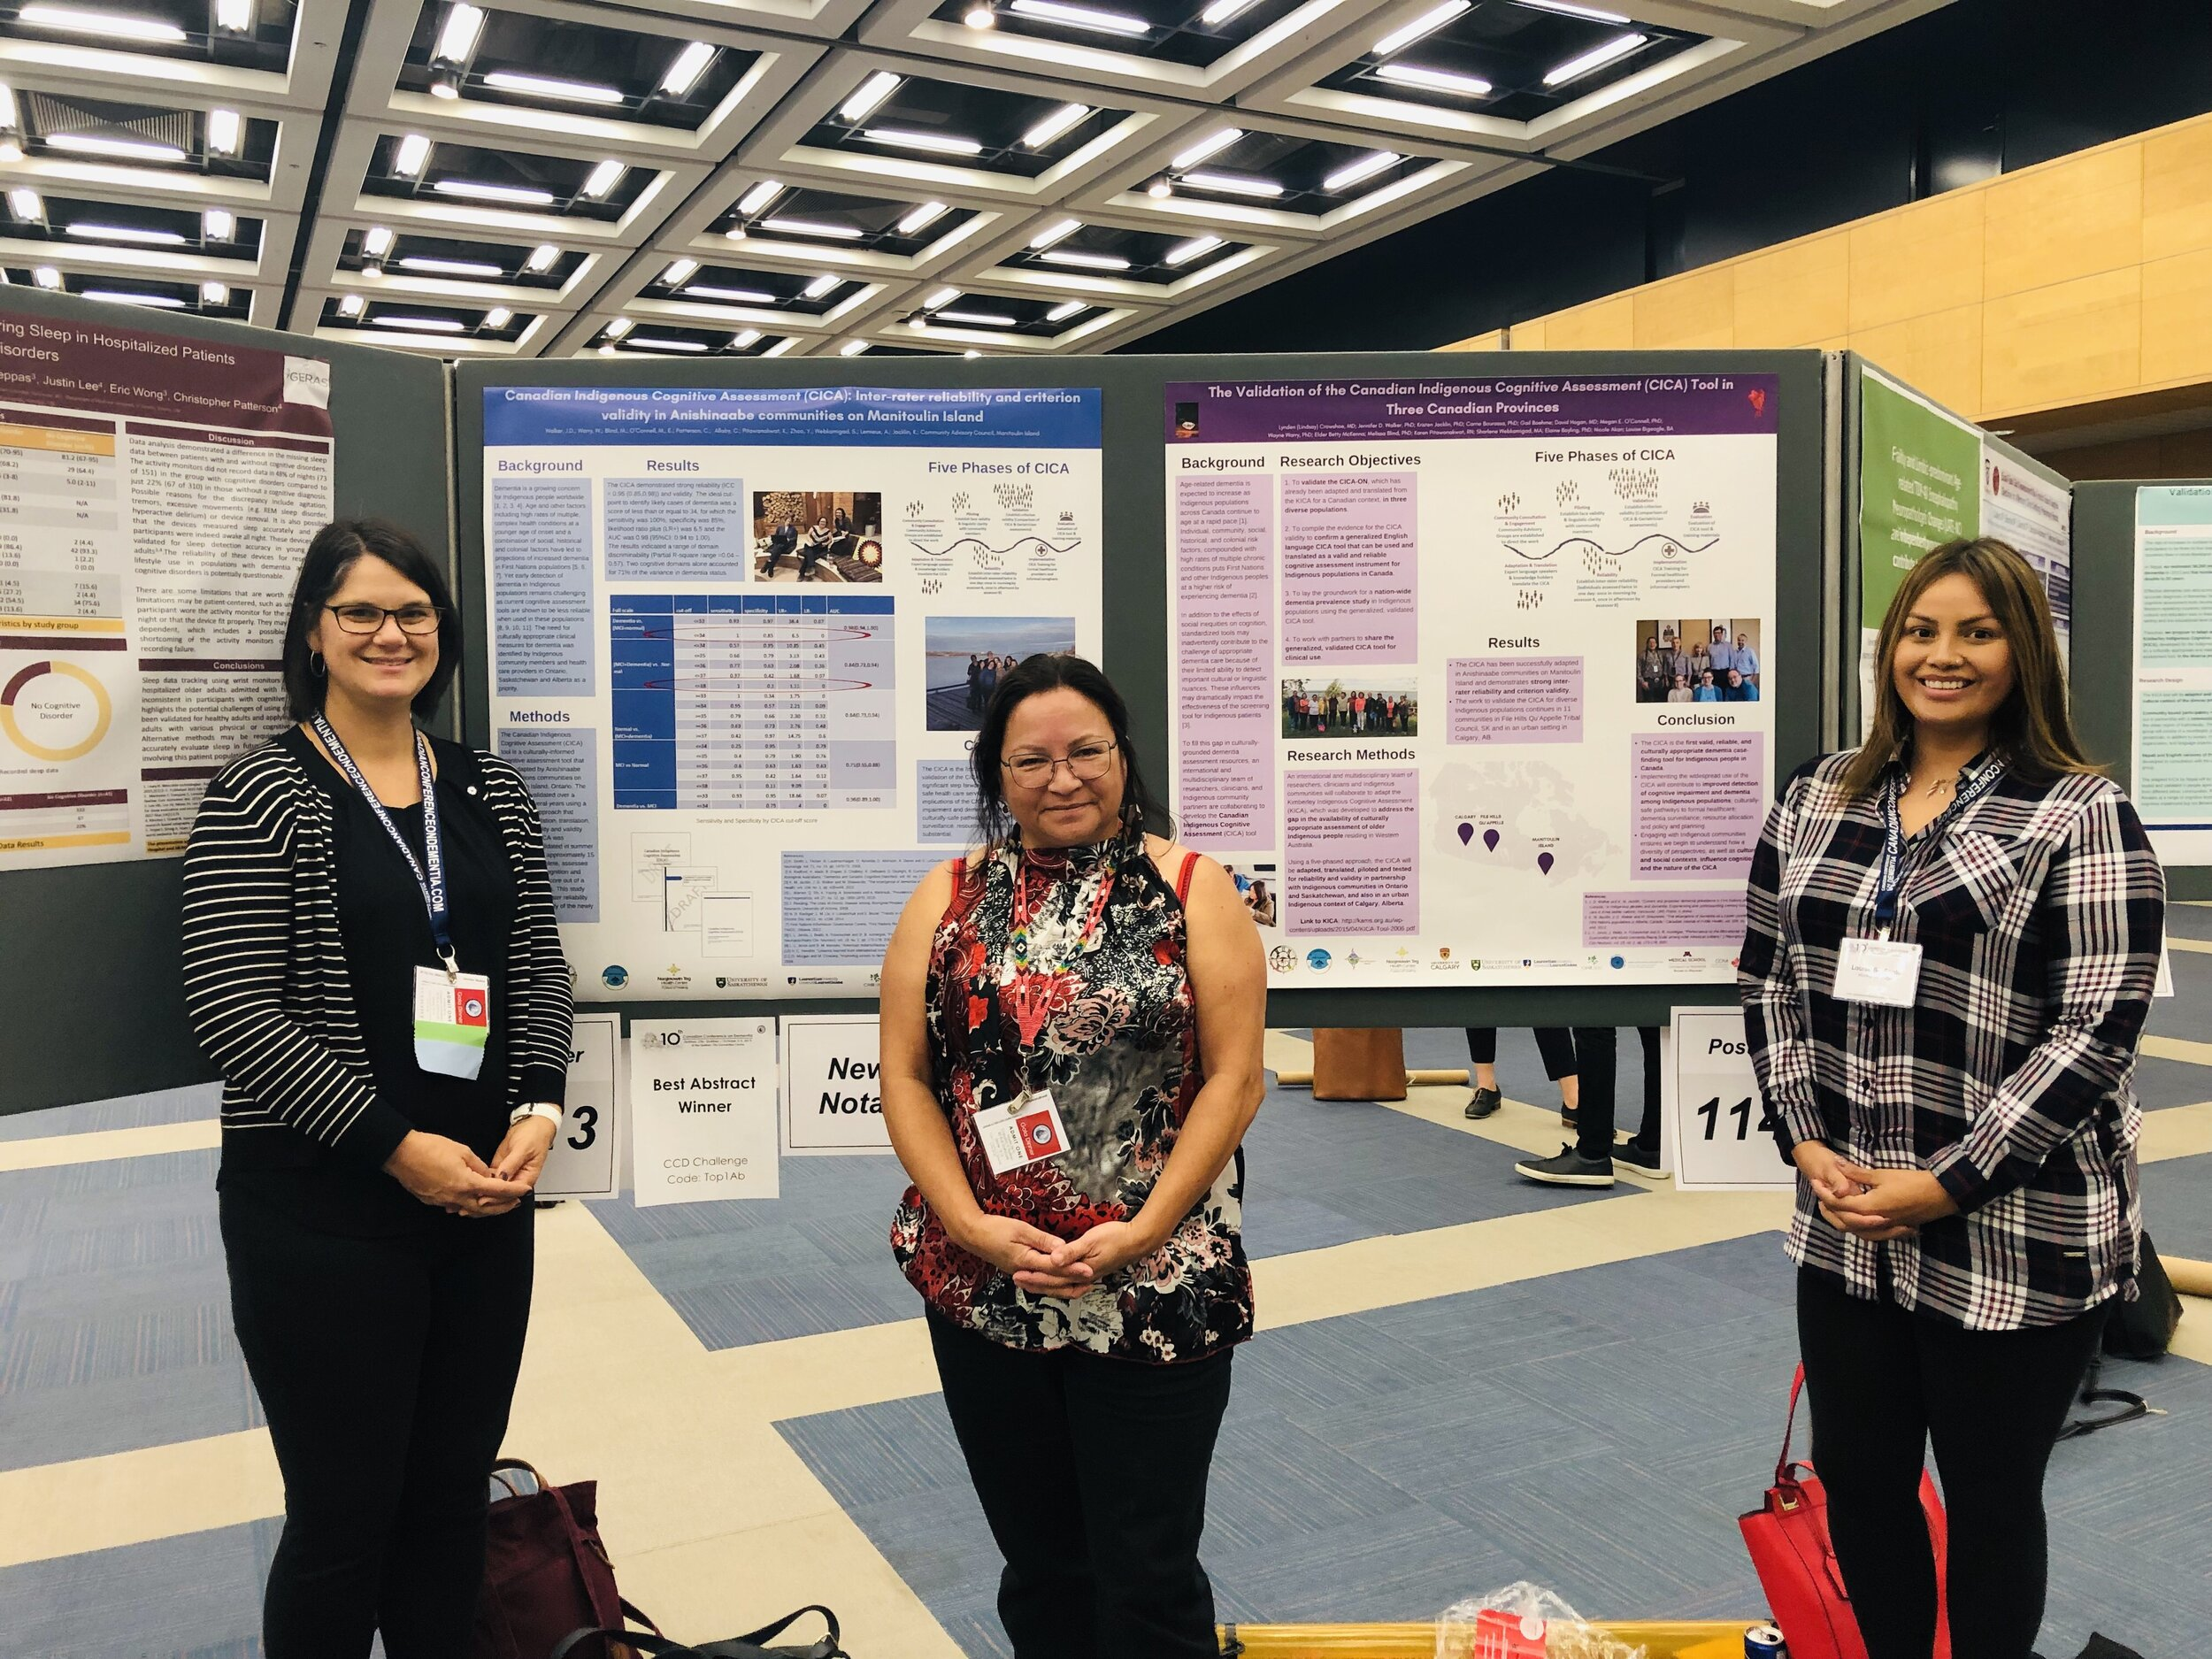 Louise BigEagle providing a poster presentation for the Canadian Indigenous Cognitive Assessment at the 10th Canadian Conference on Dementia.